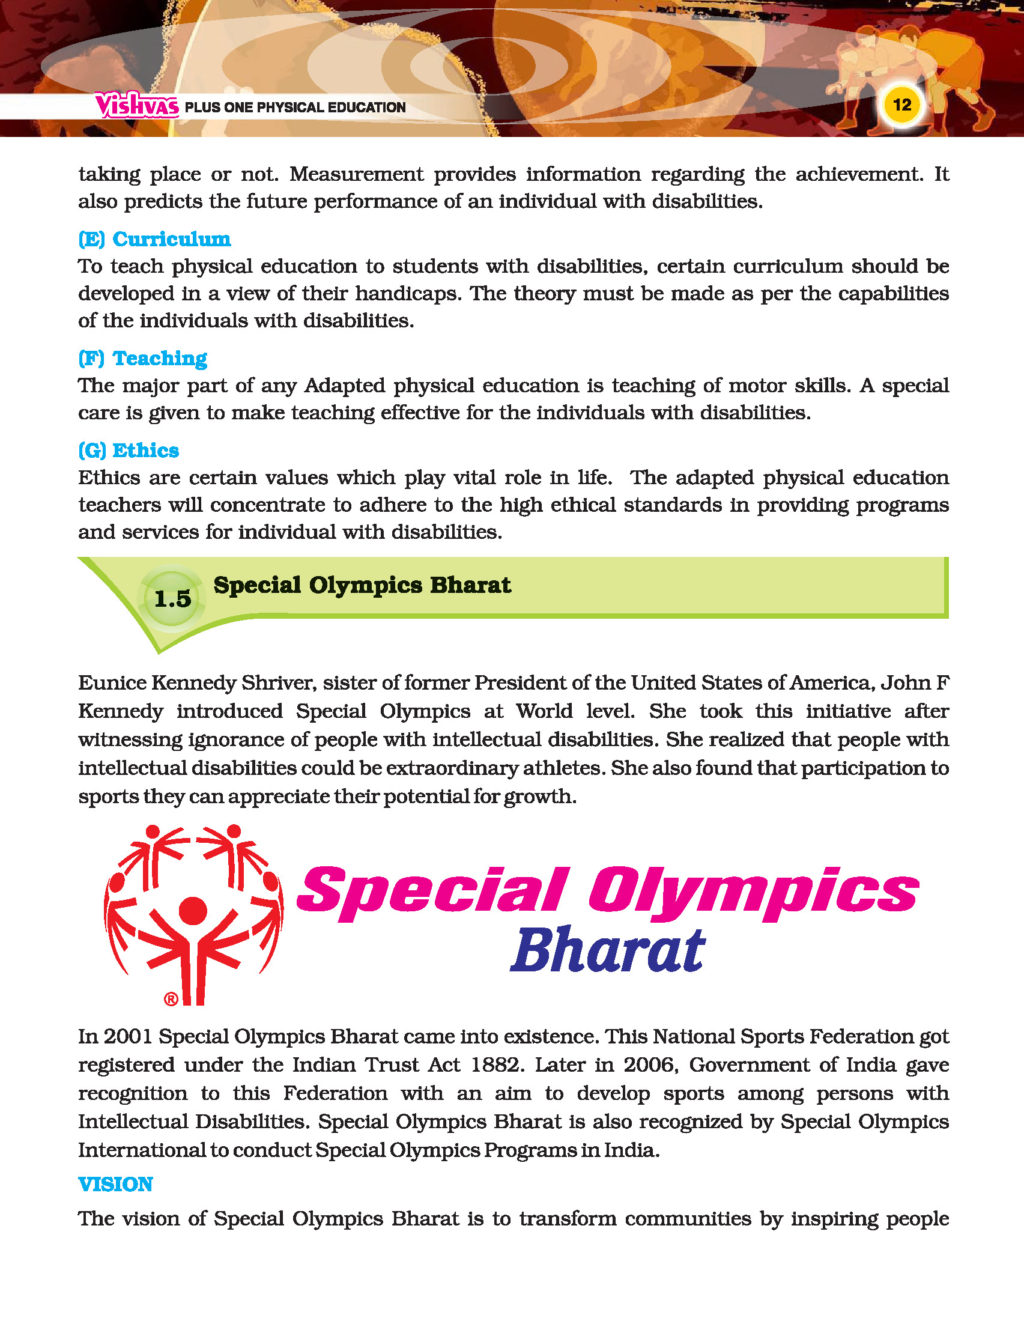 http://vishvasbook.com/wp-content/uploads/2016/09/Physical-Education_ebook_11_Page_22-1024x1321.jpg